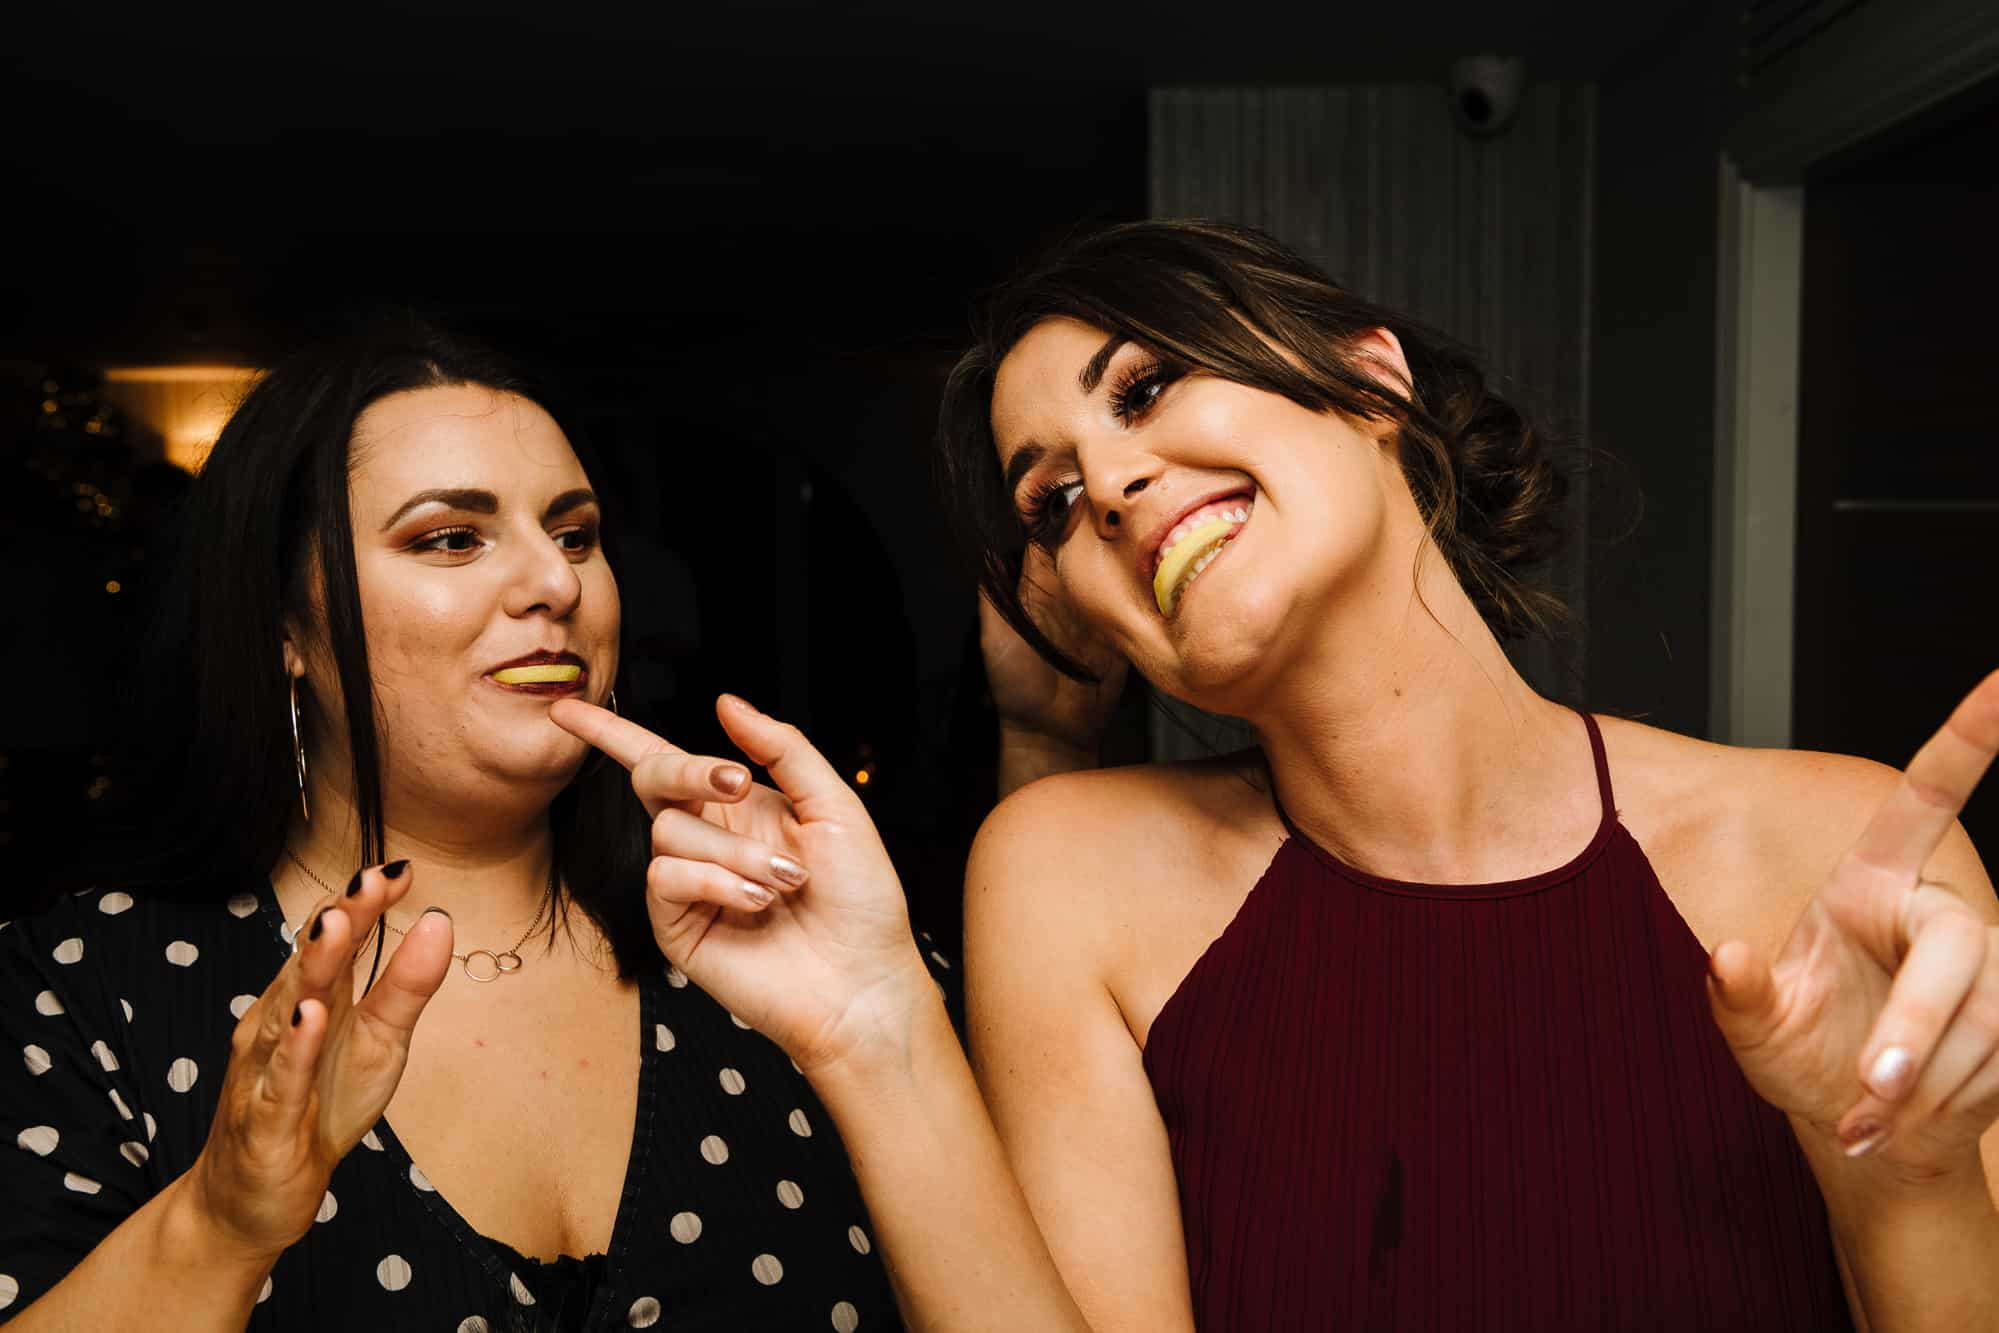 Bridesmaid and friend drinking tequila